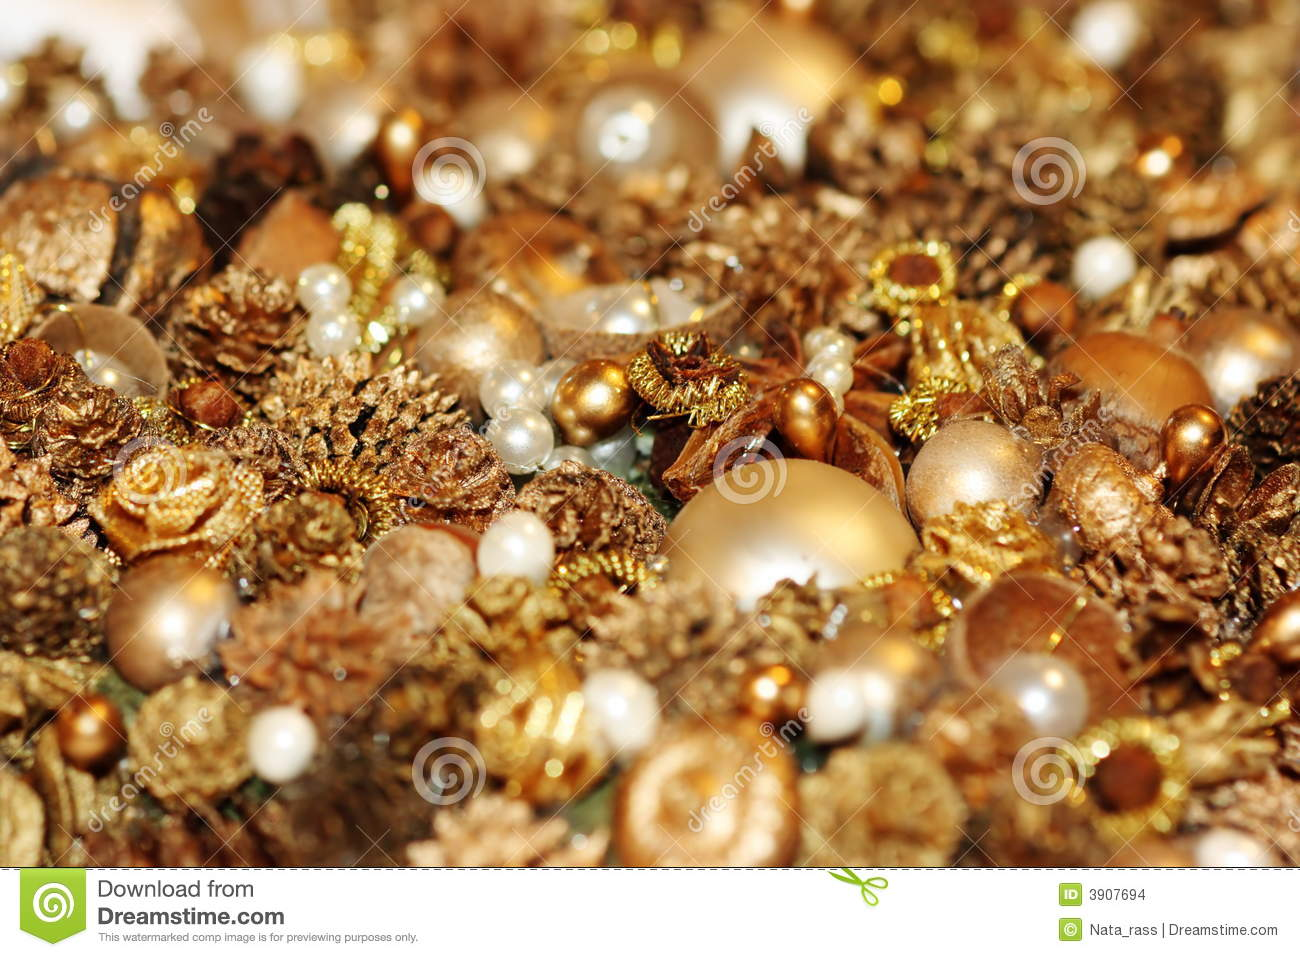 Shining treasures for decoration of Christmas-tree. Shallow DOF.